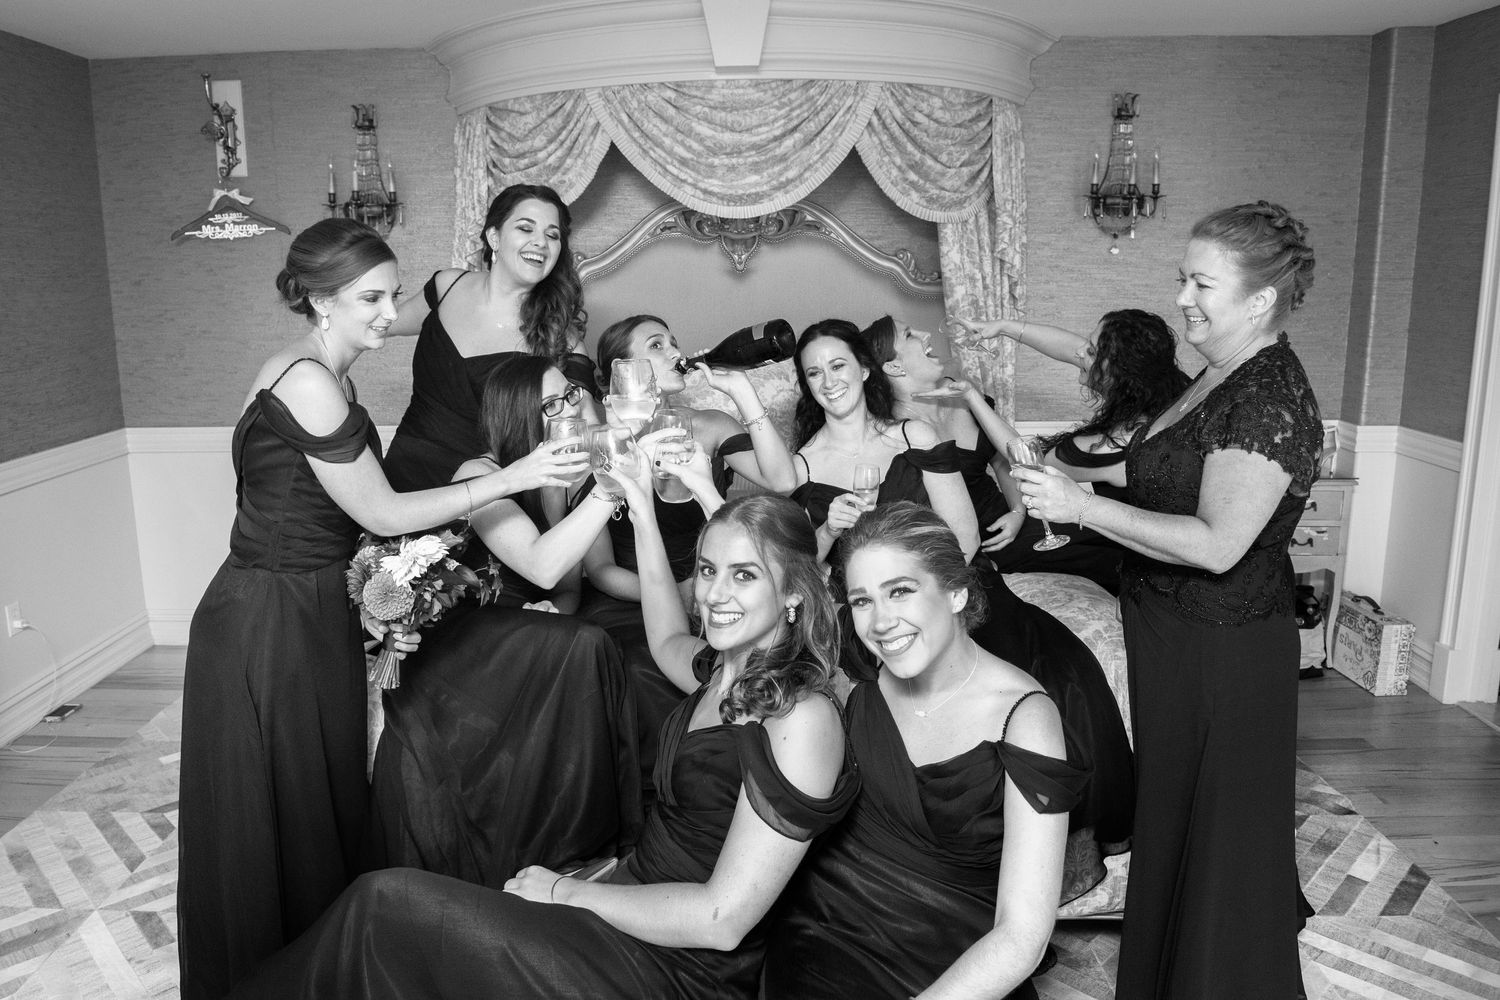 bridesmaids cheers their drinks